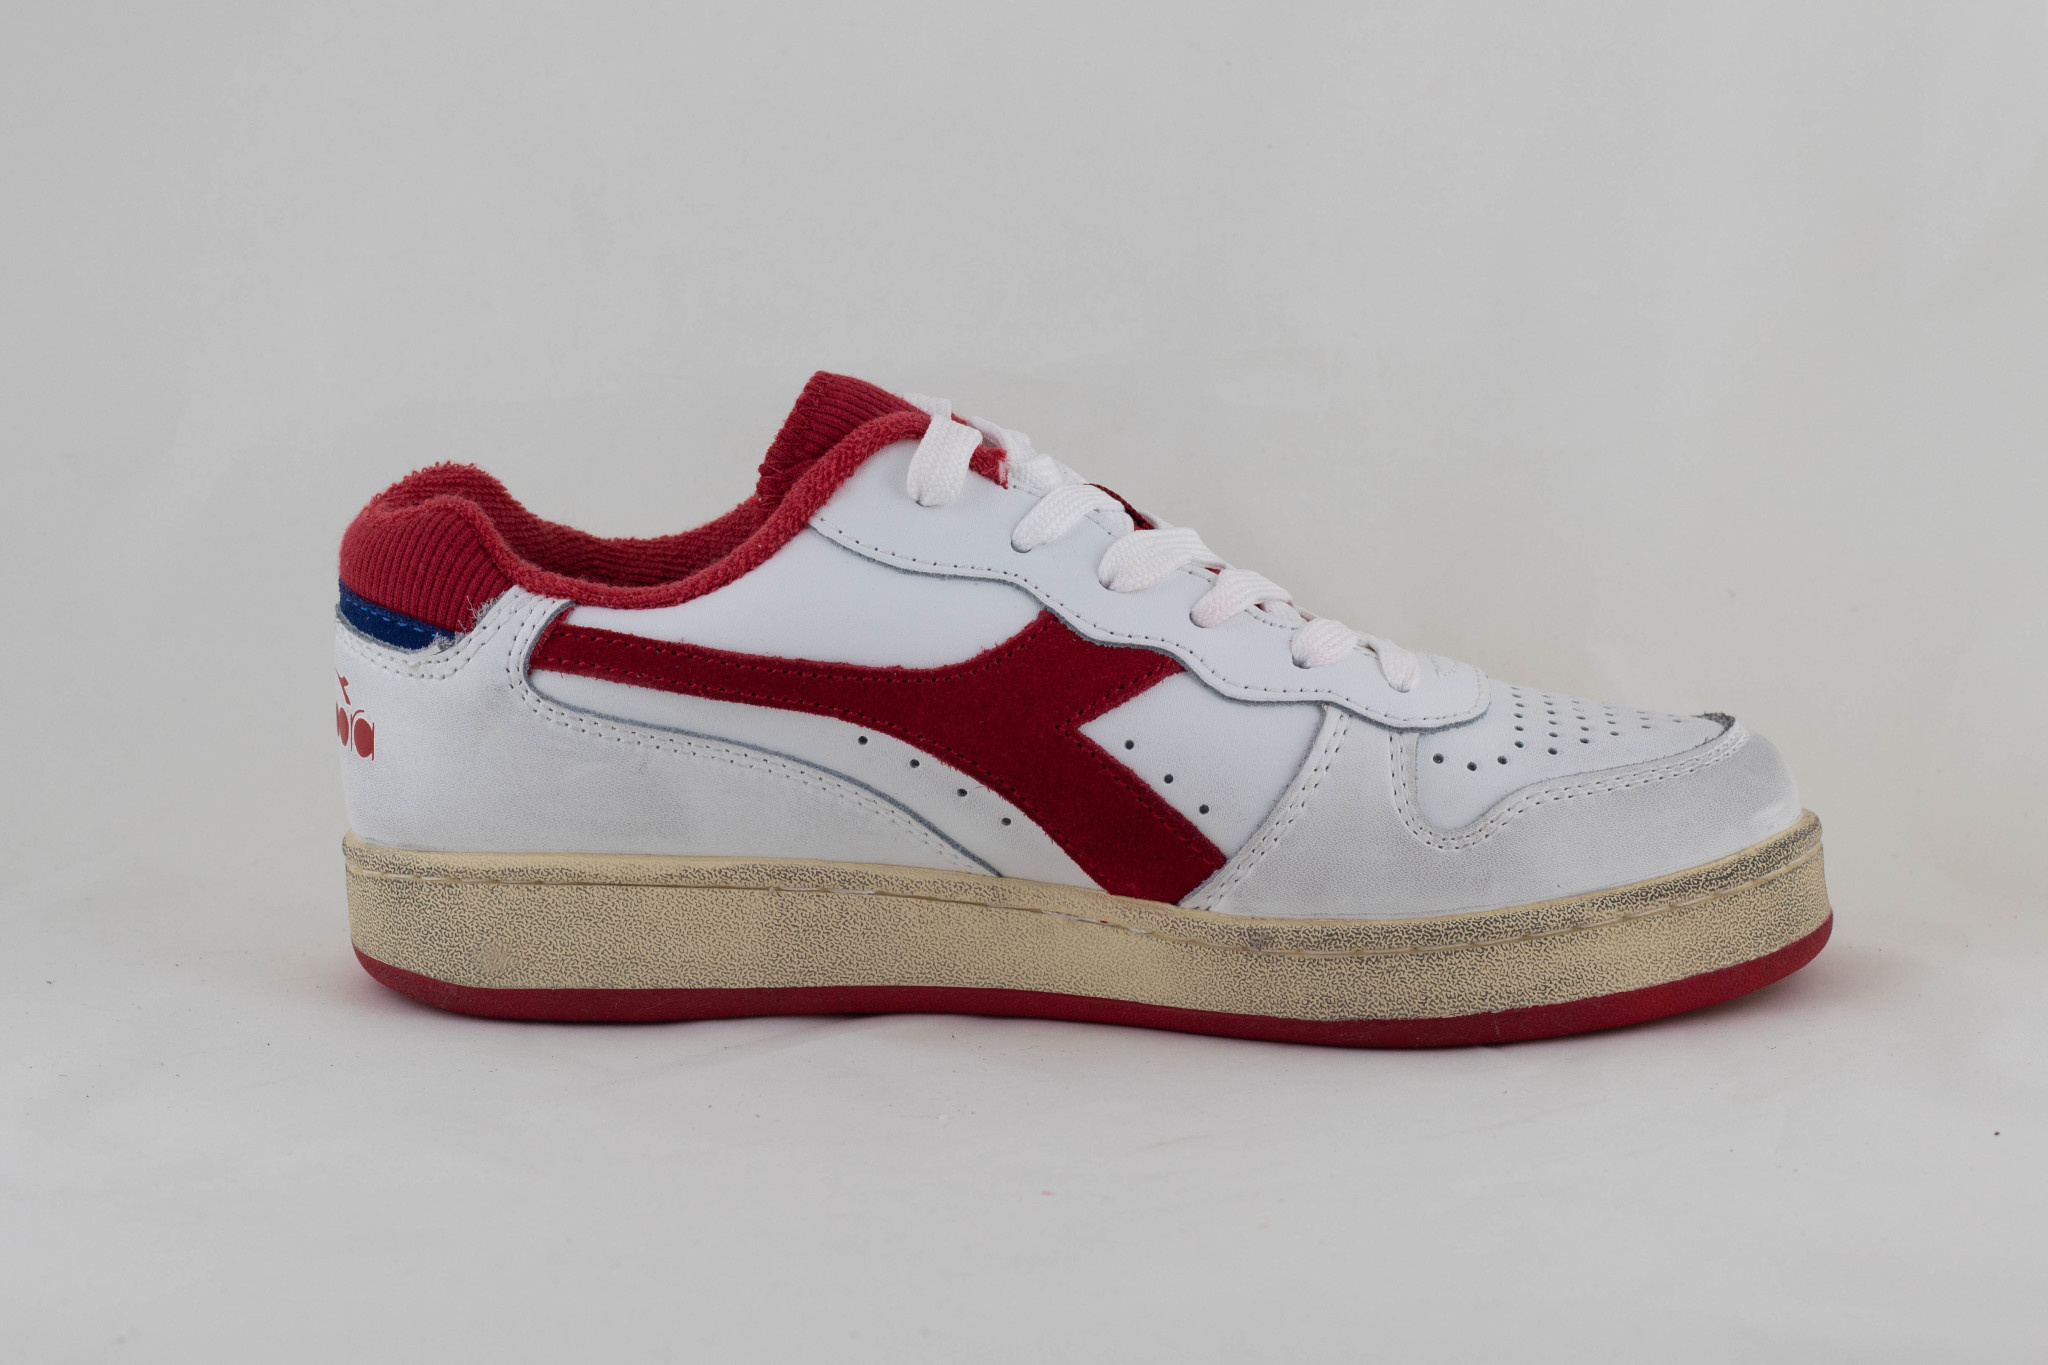 DIADORA MI BASKET LOW USED White/ Tomato Puree